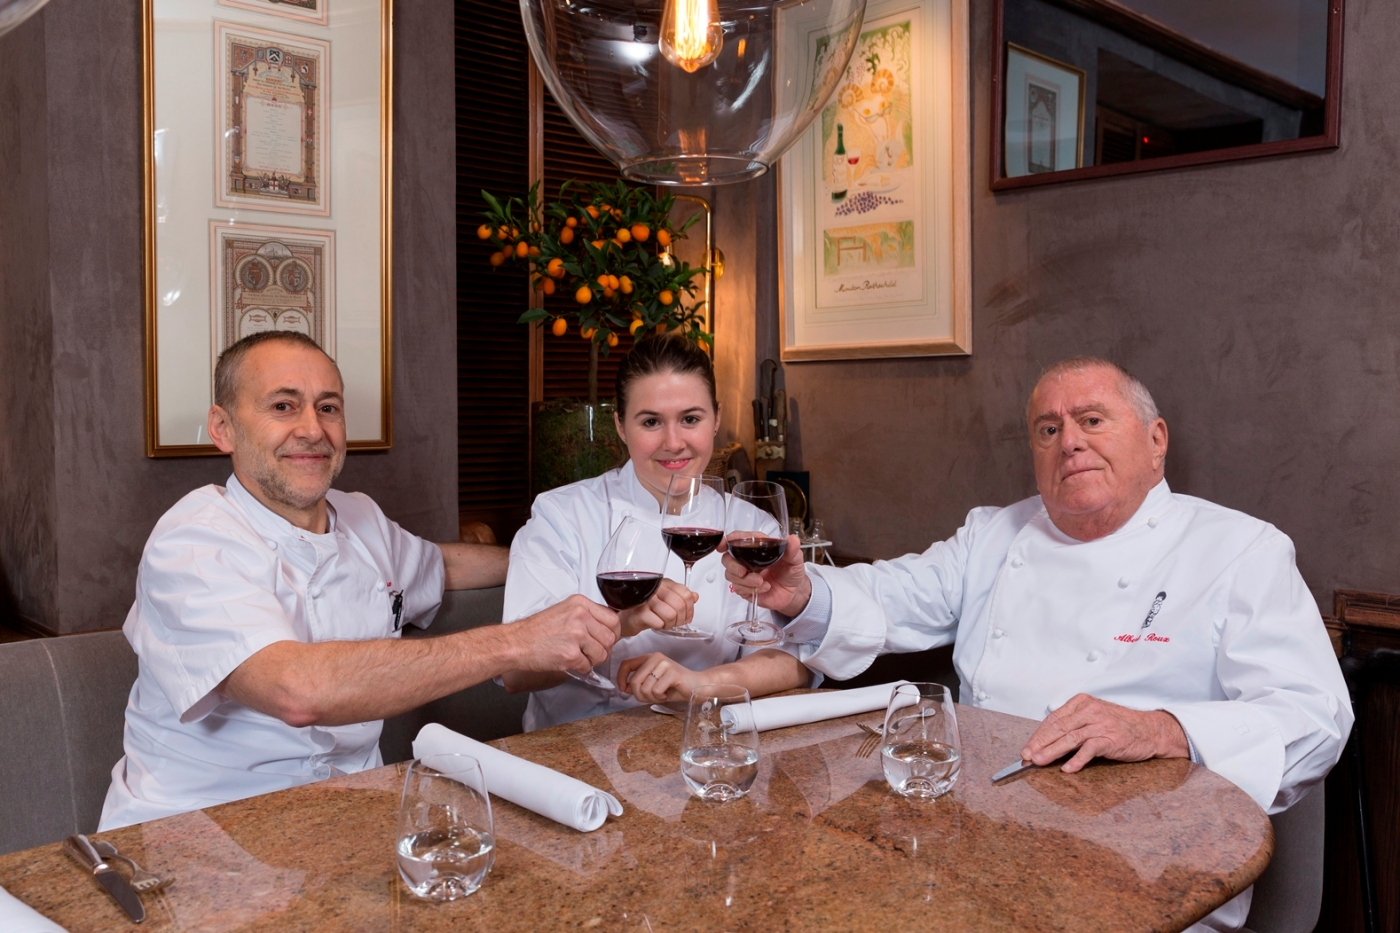 Albert Michel and Emily Roux to open restaurants in Scotland 1